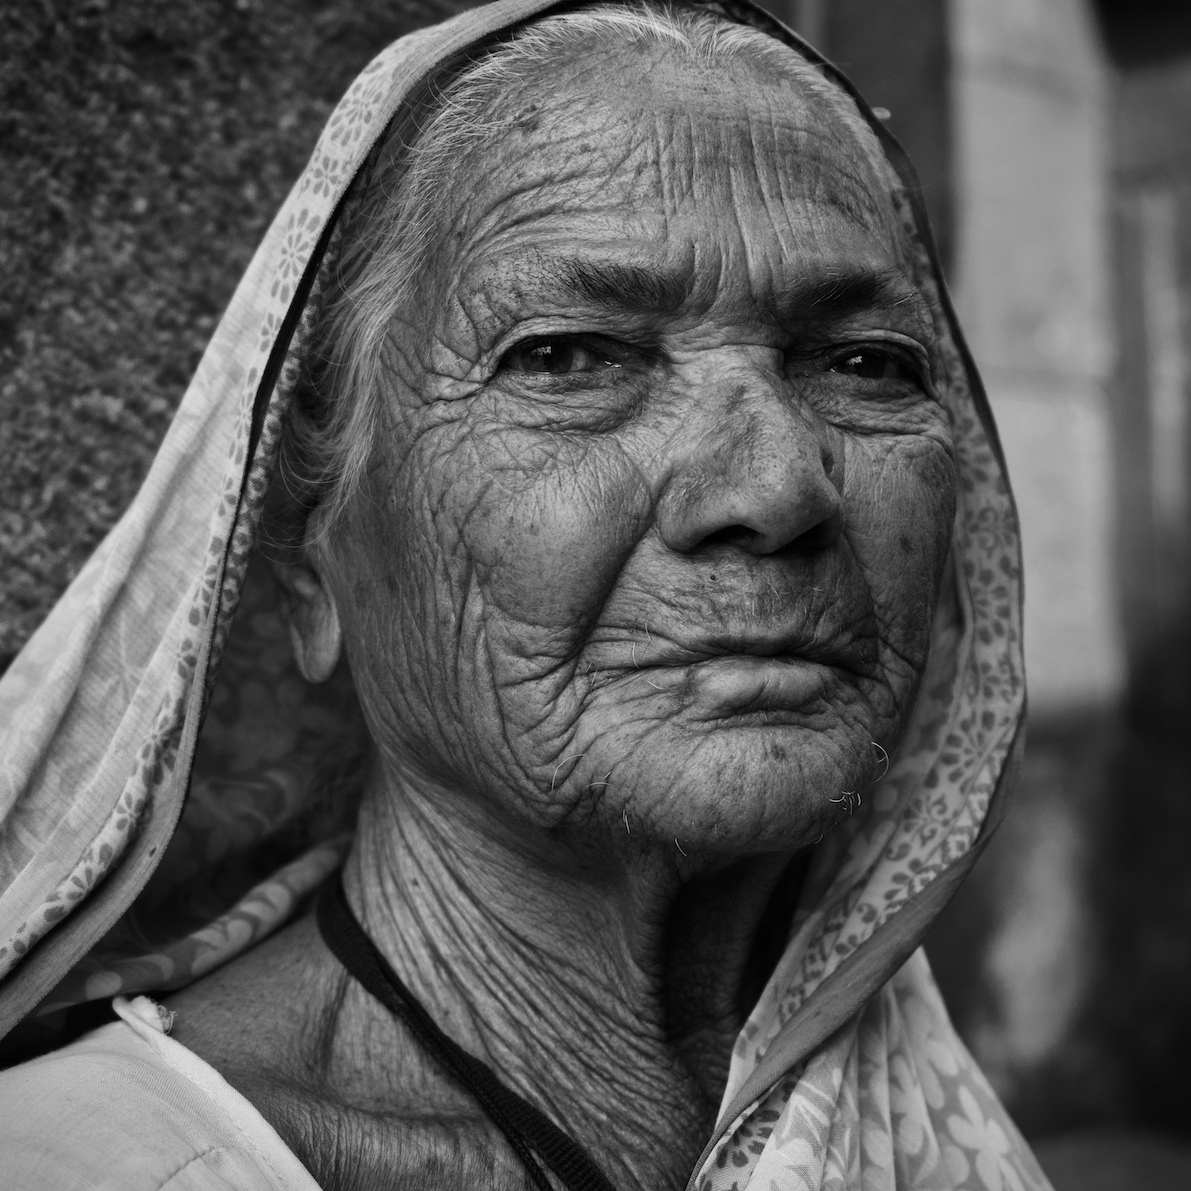 Old woman with wrinkled face.